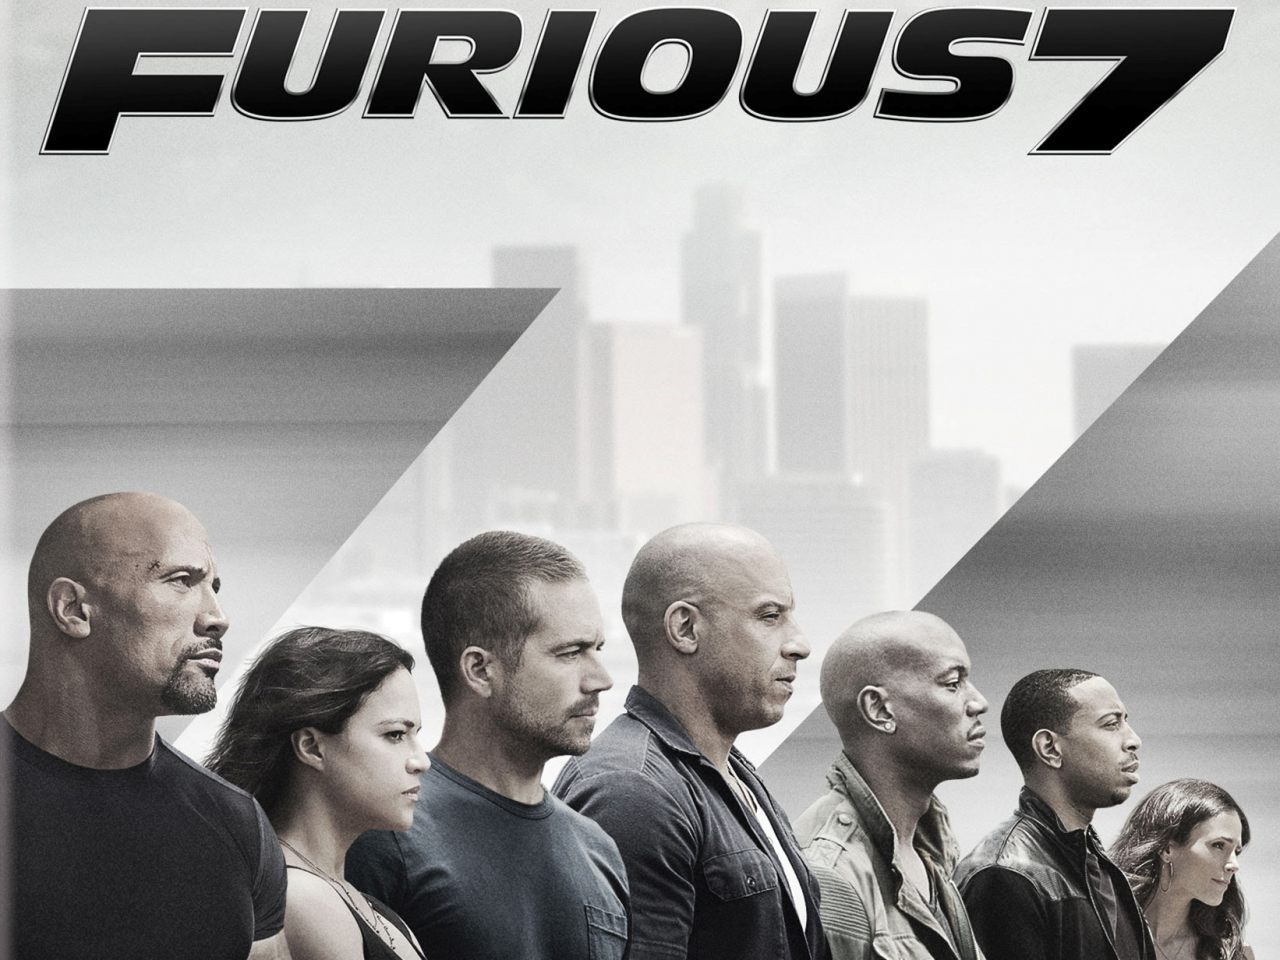 fast and furious 7 full movie free download mp4 in hindi